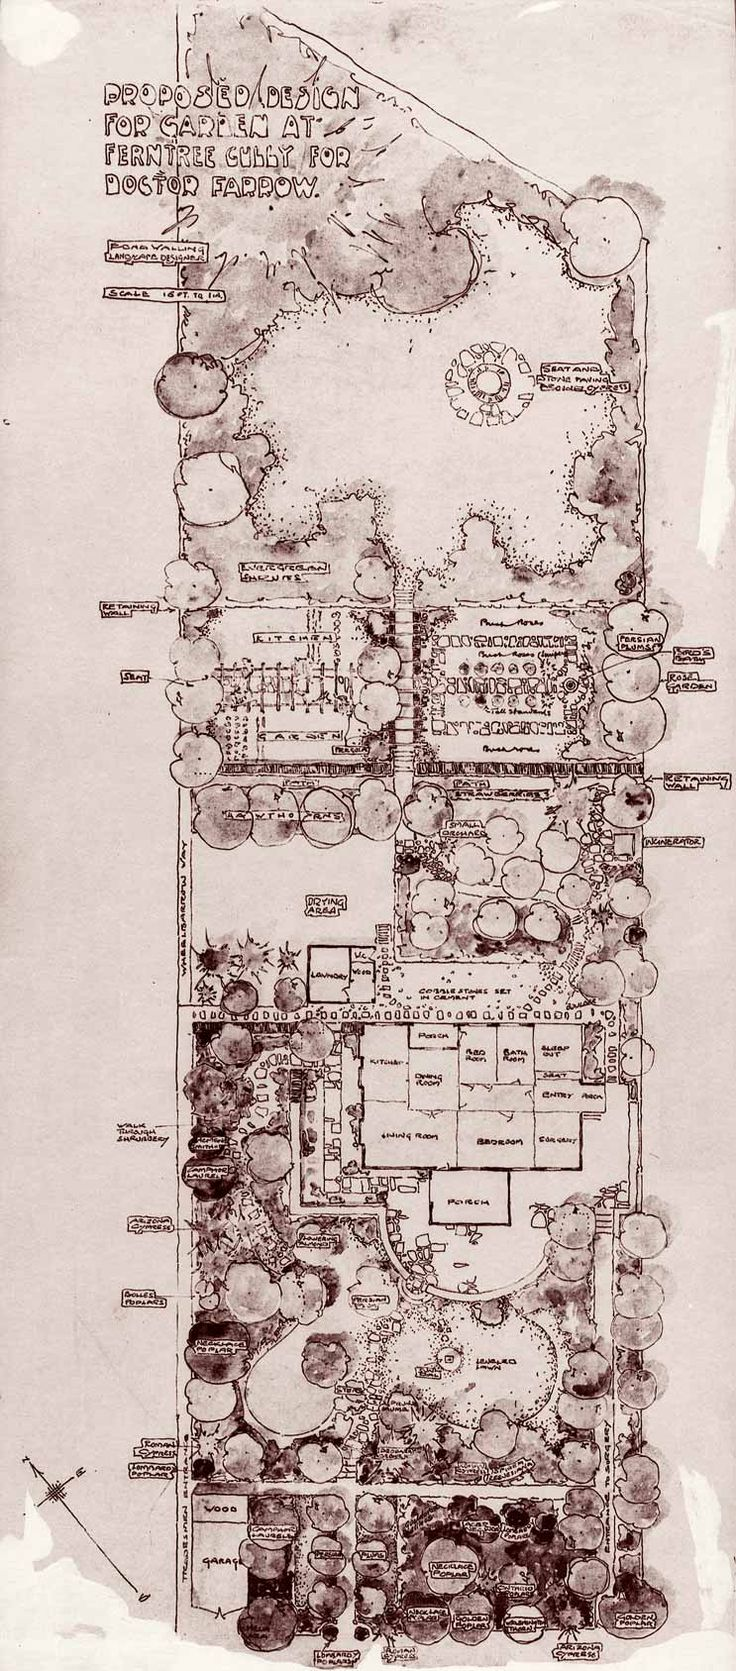 Traditional plan with some beautifully designed elements. Love the quality of the hand drafting.